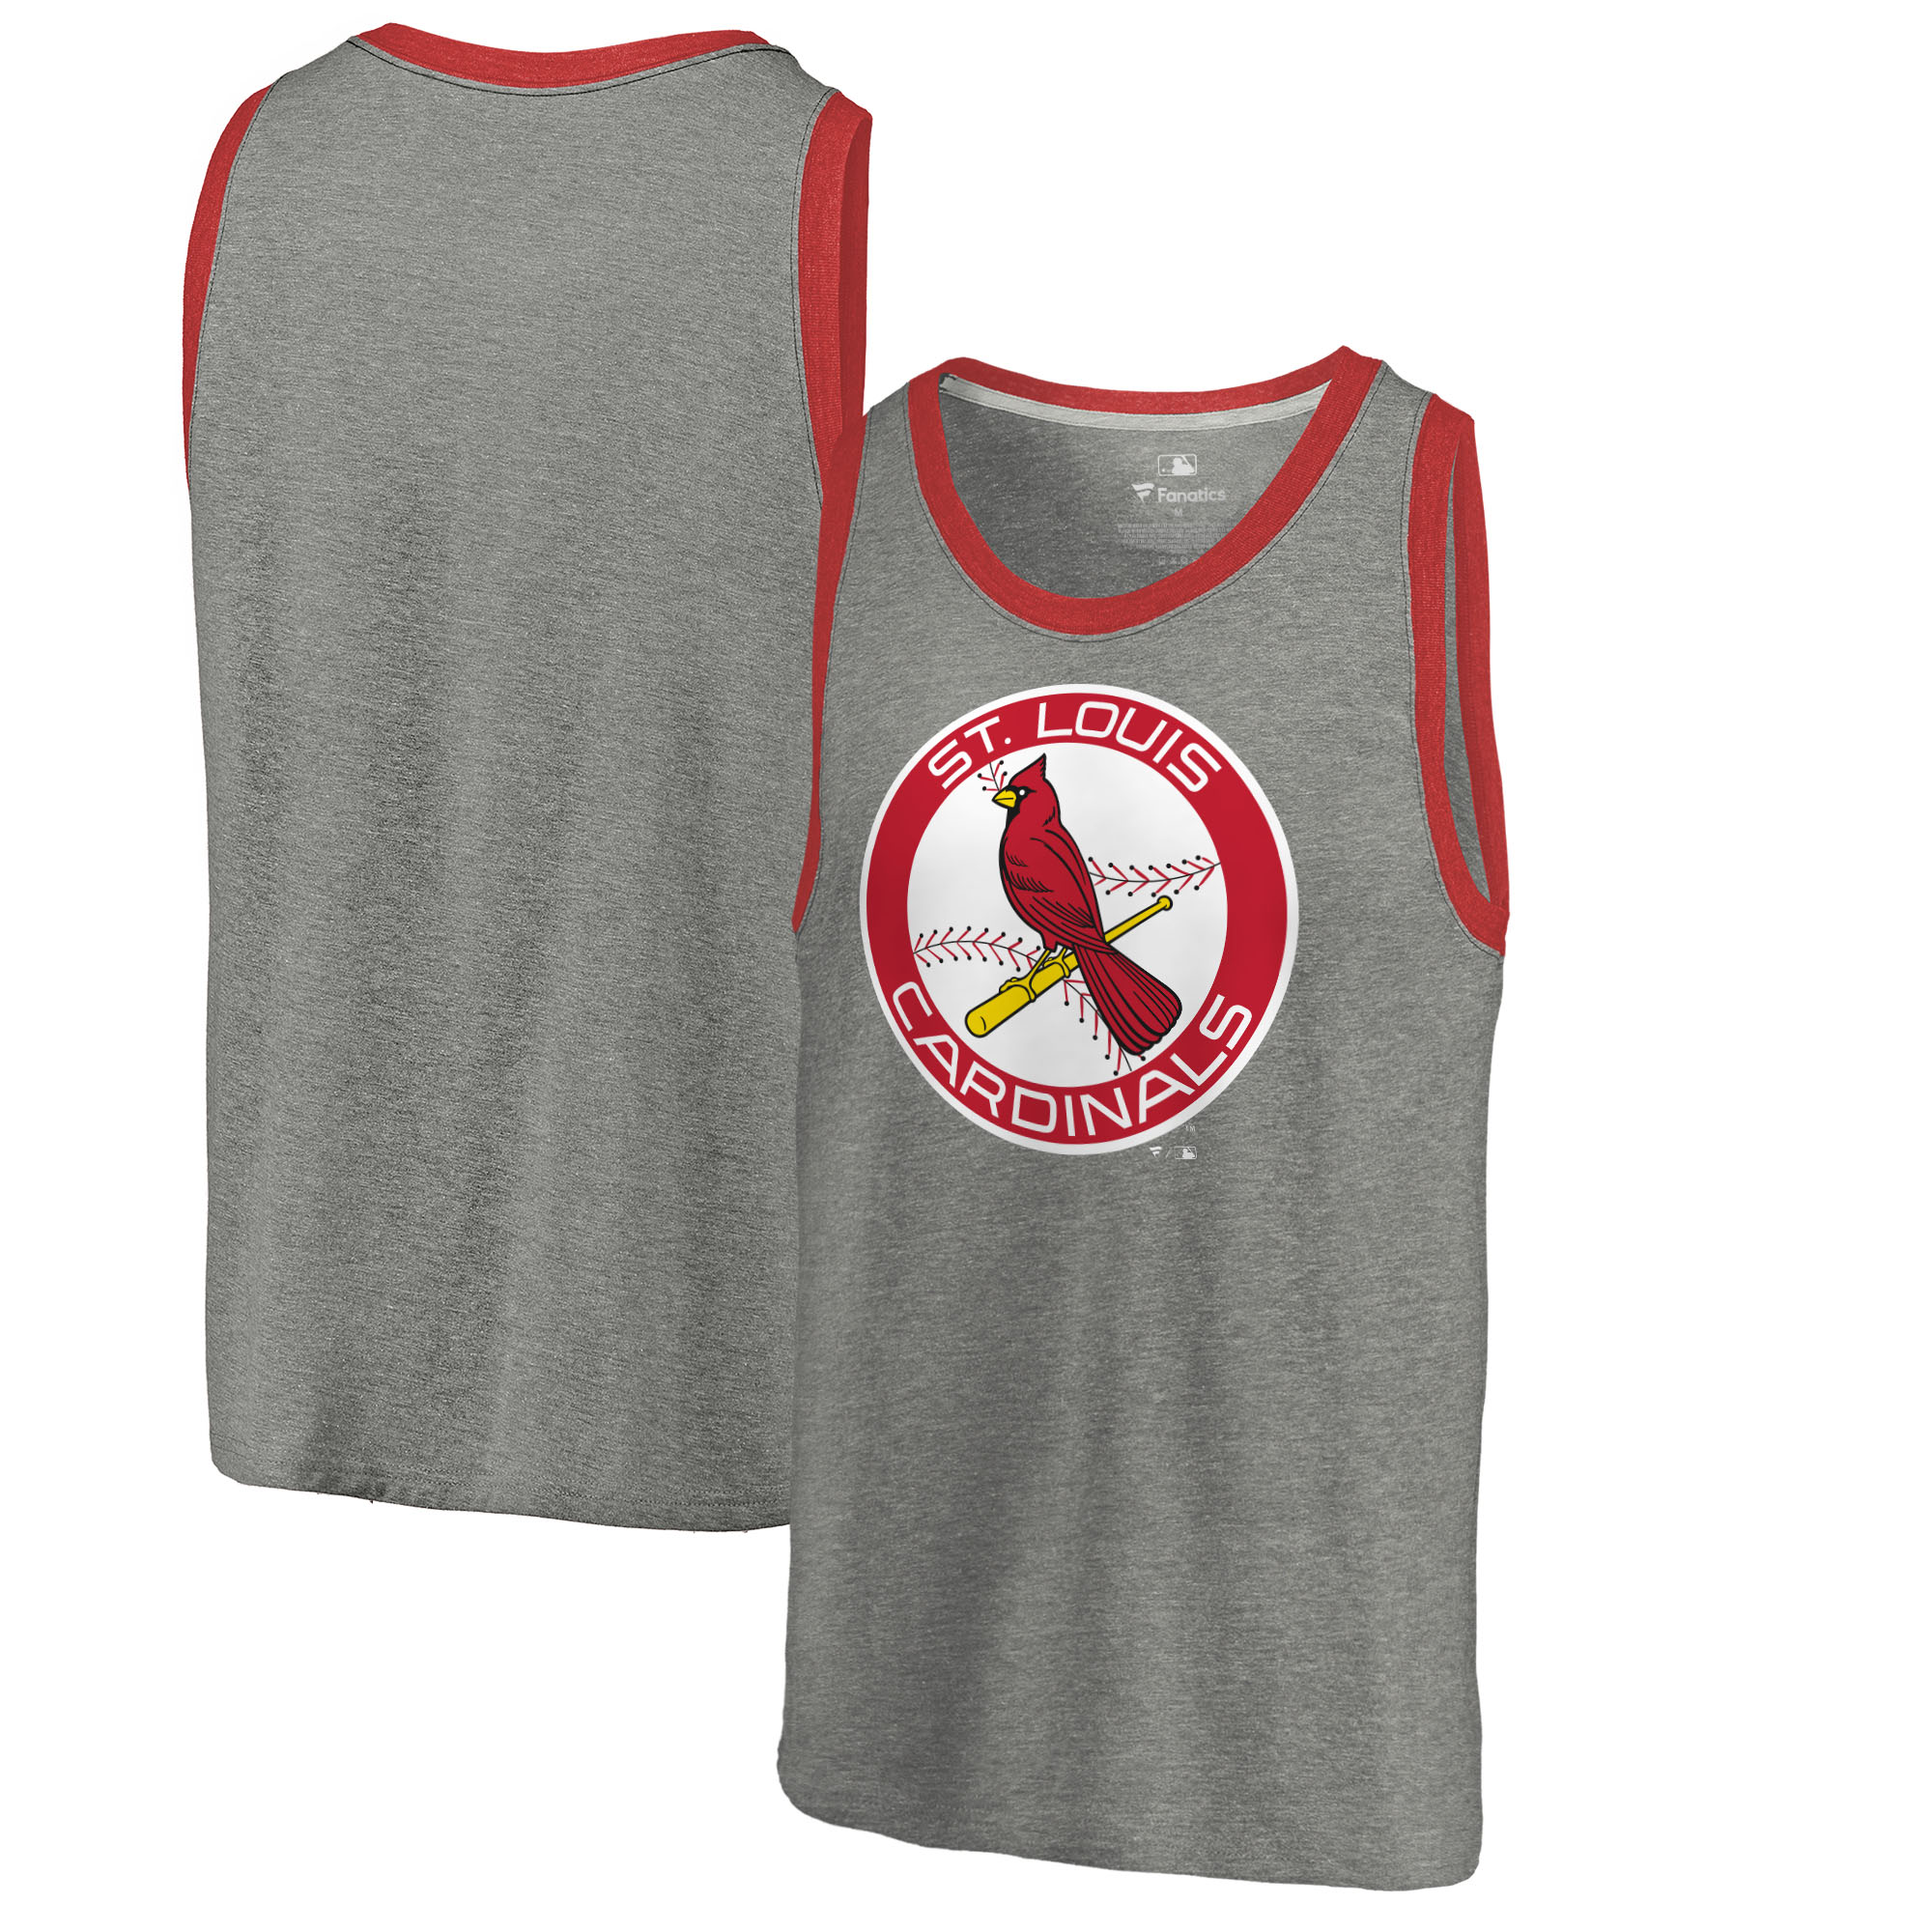 St. Louis Cardinals Fanatics Branded Cooperstown Collection Huntington Tri-Blend Tank Top - Heathered Gray